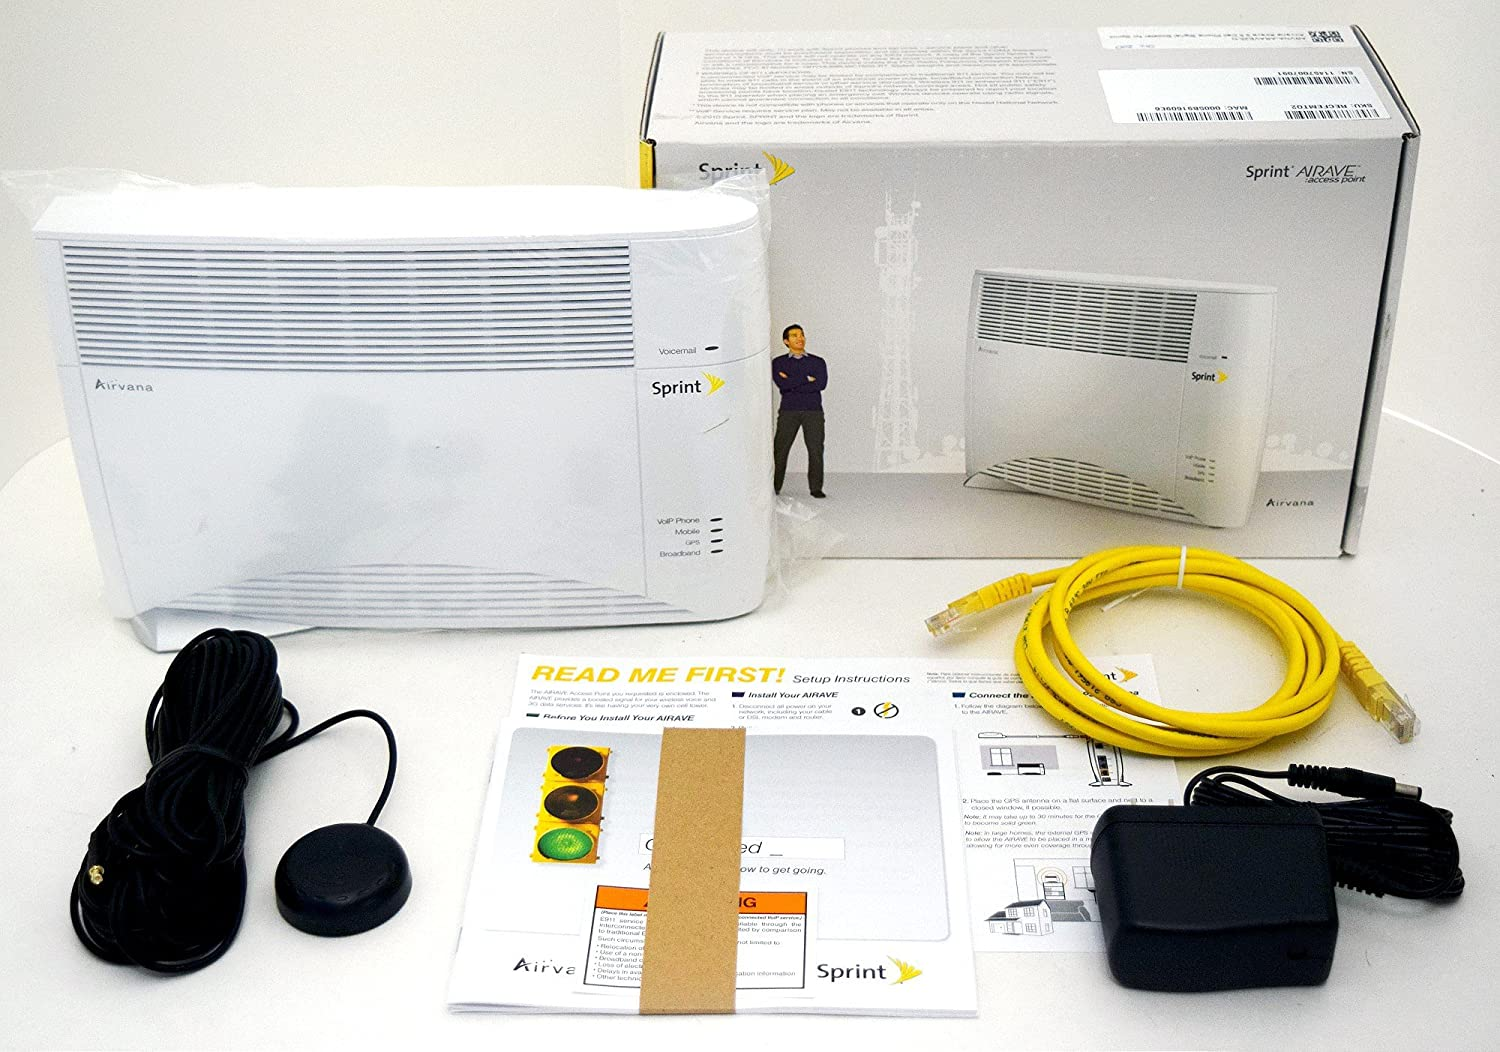 amazon com airave airvana version 2 sprint access point cellphone rh amazon com sprint airave setup with router Sprint Magic Box